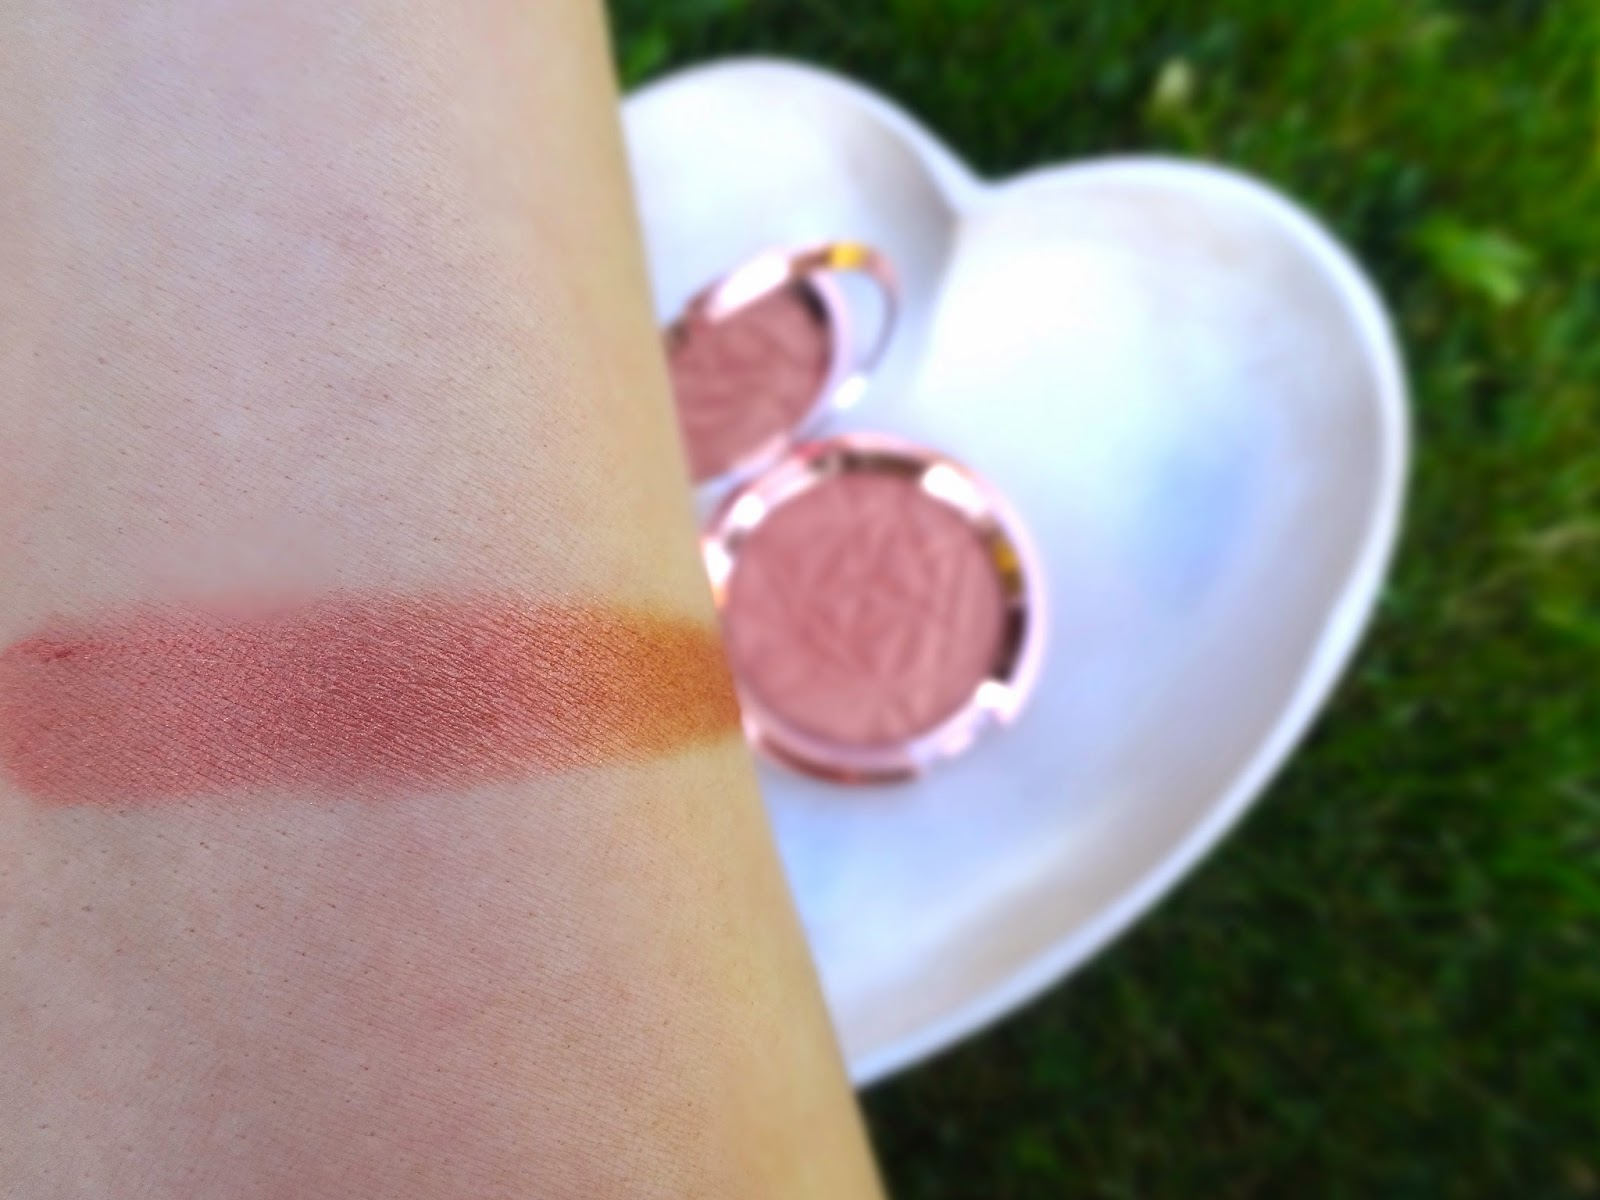 Becca Cosmetics : Limited Edition Shimmering Skin Perfector Pressed Blushed Copper swatch